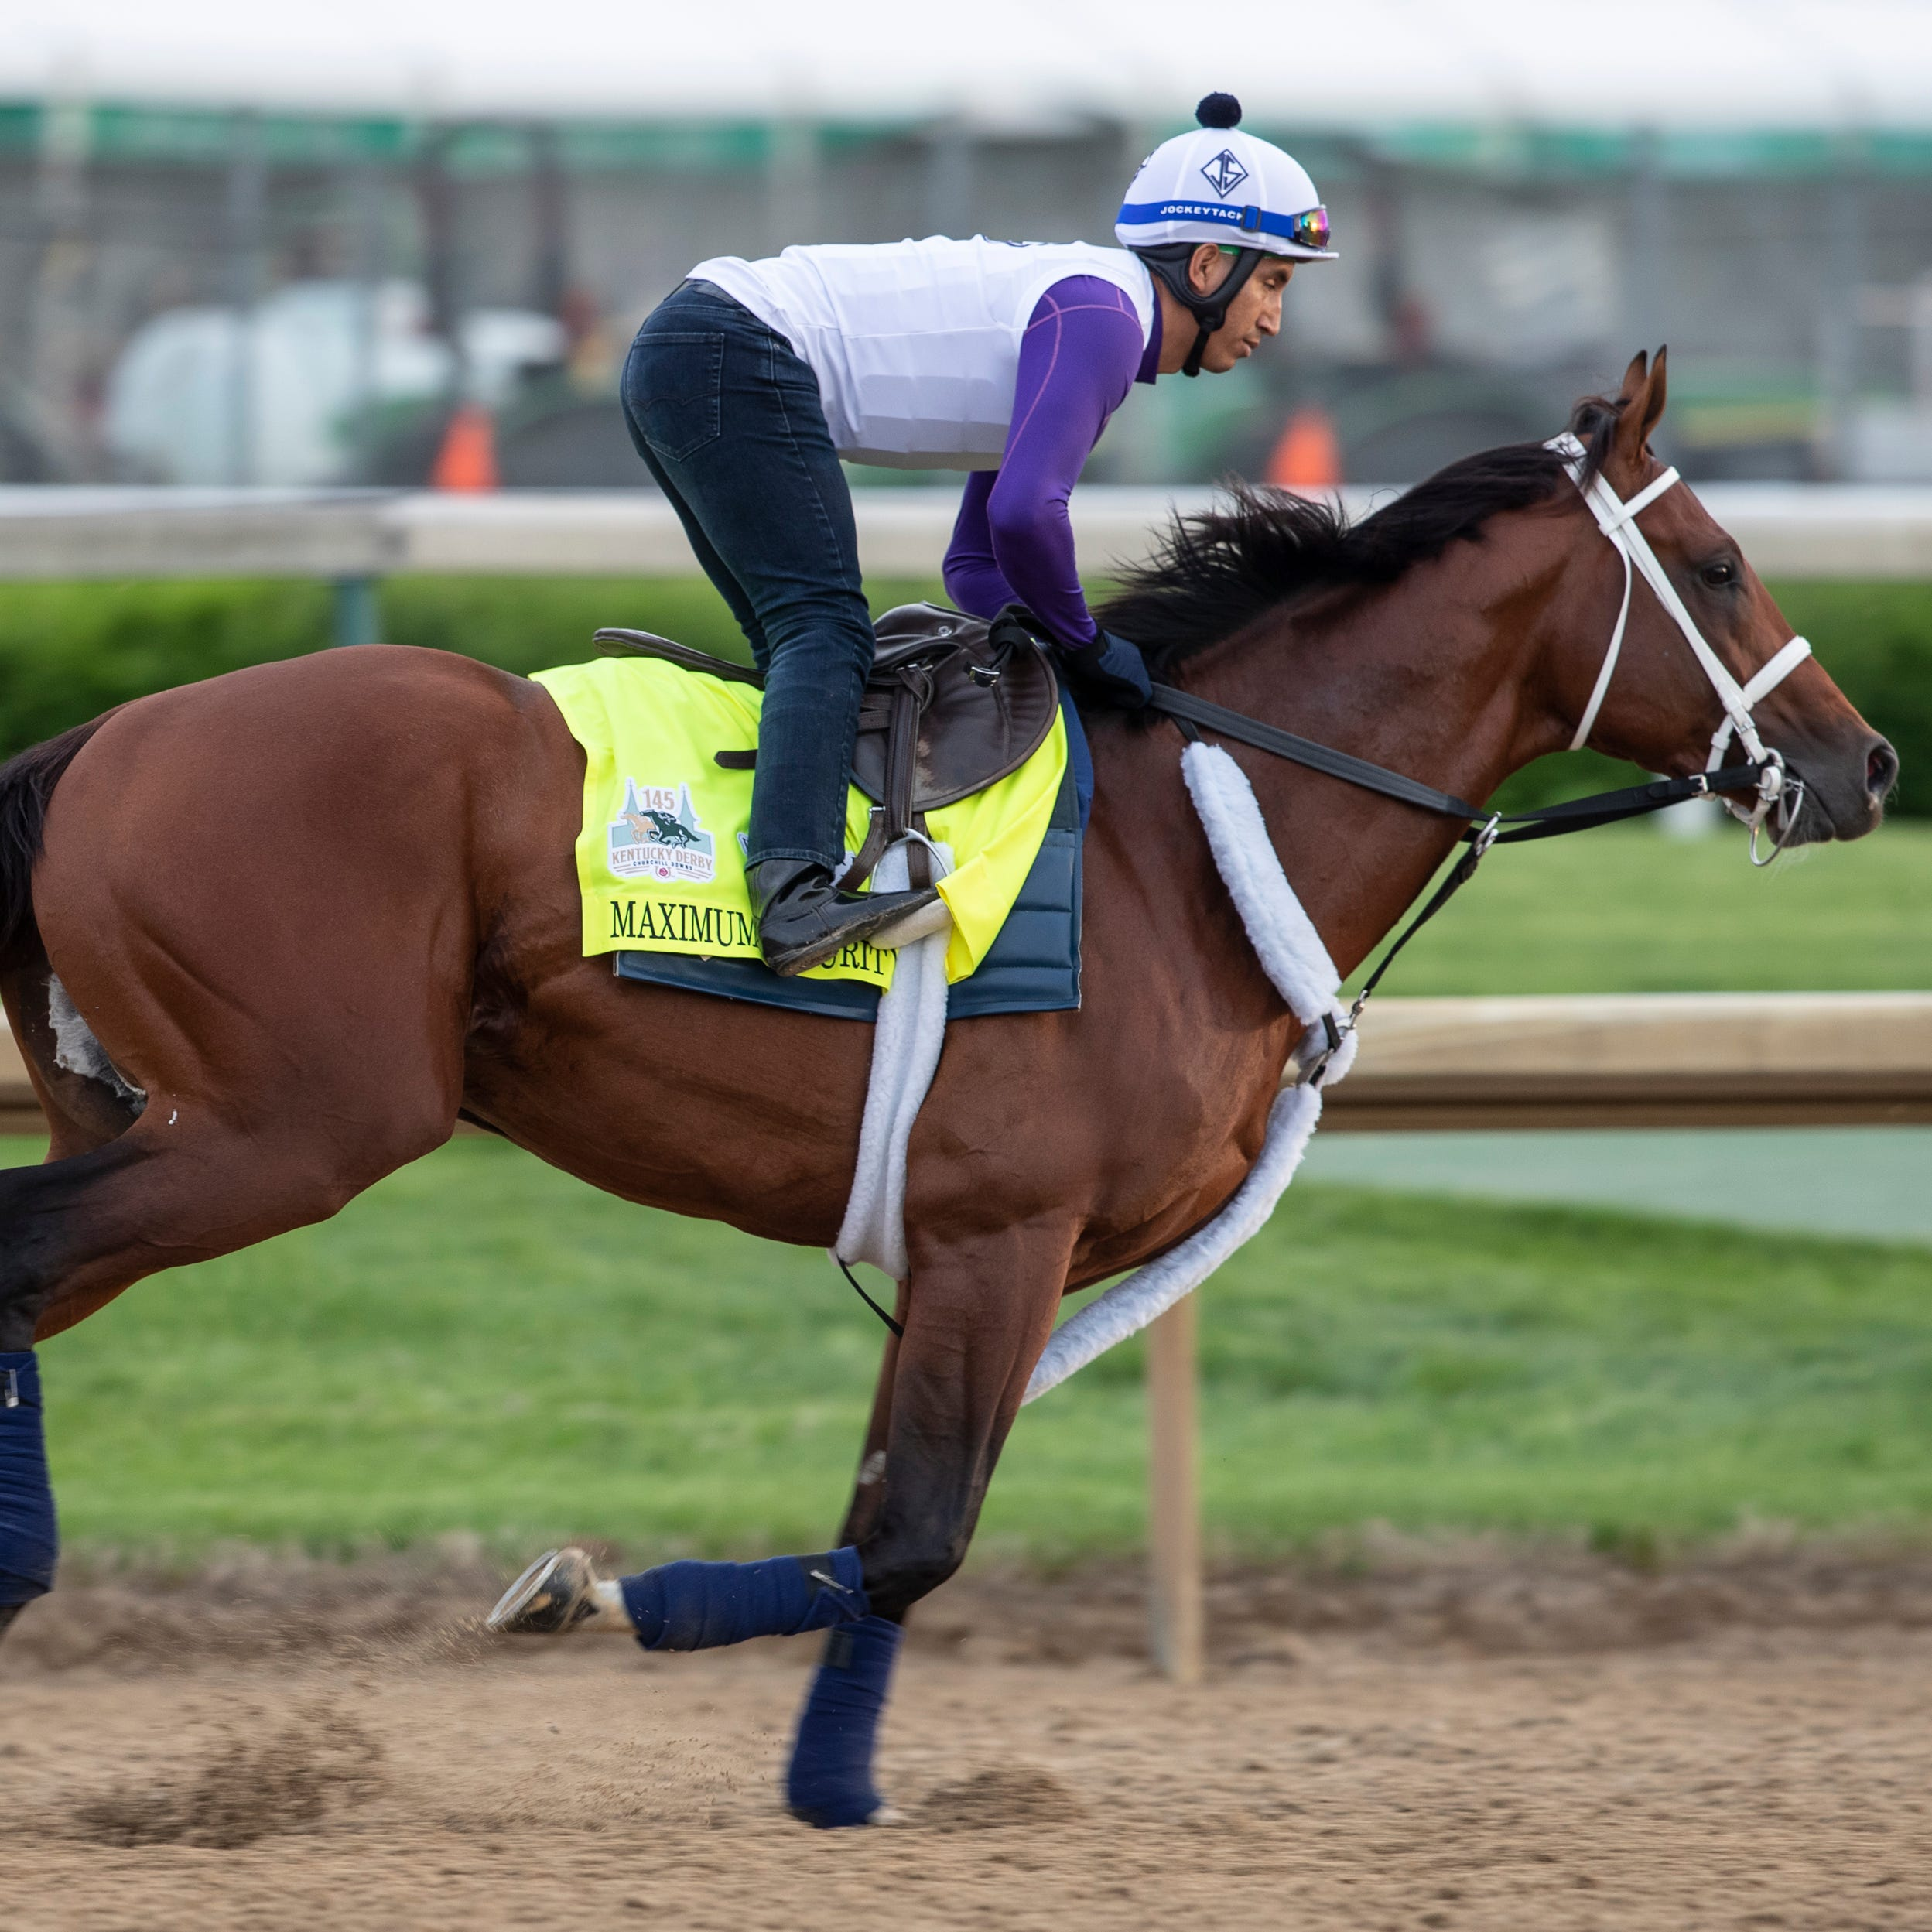 The Kentucky Derby race may lose a second contender — Haikal's status is in question